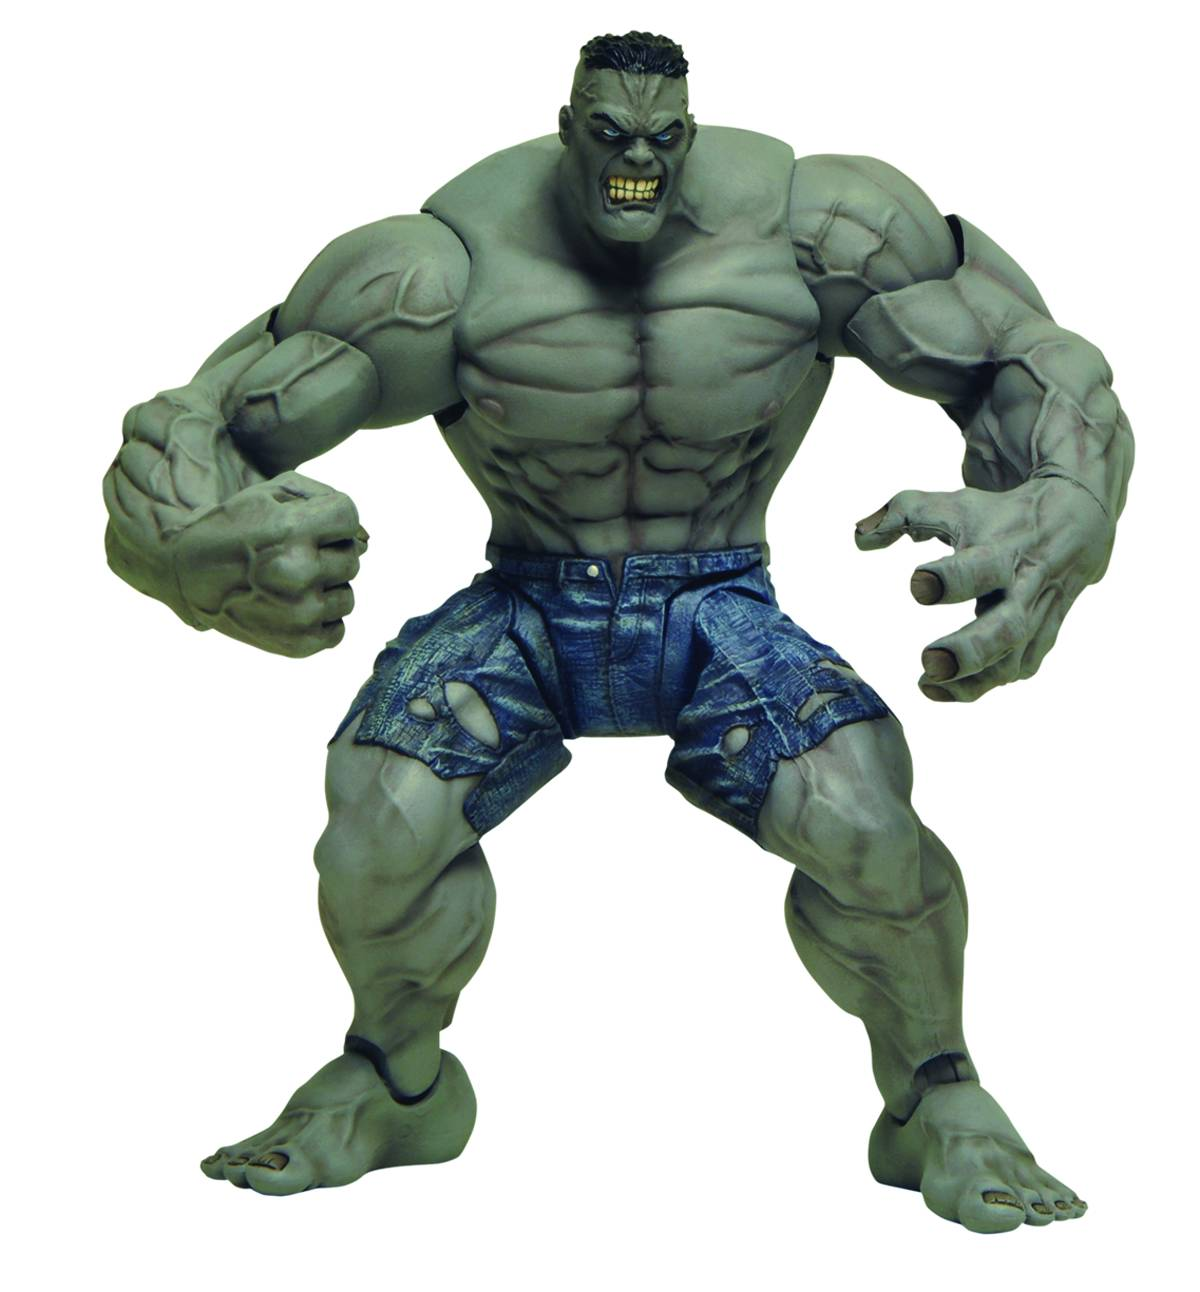 Diamond Select Toys Marvel Ultimate Hulk Action Figure | eBay